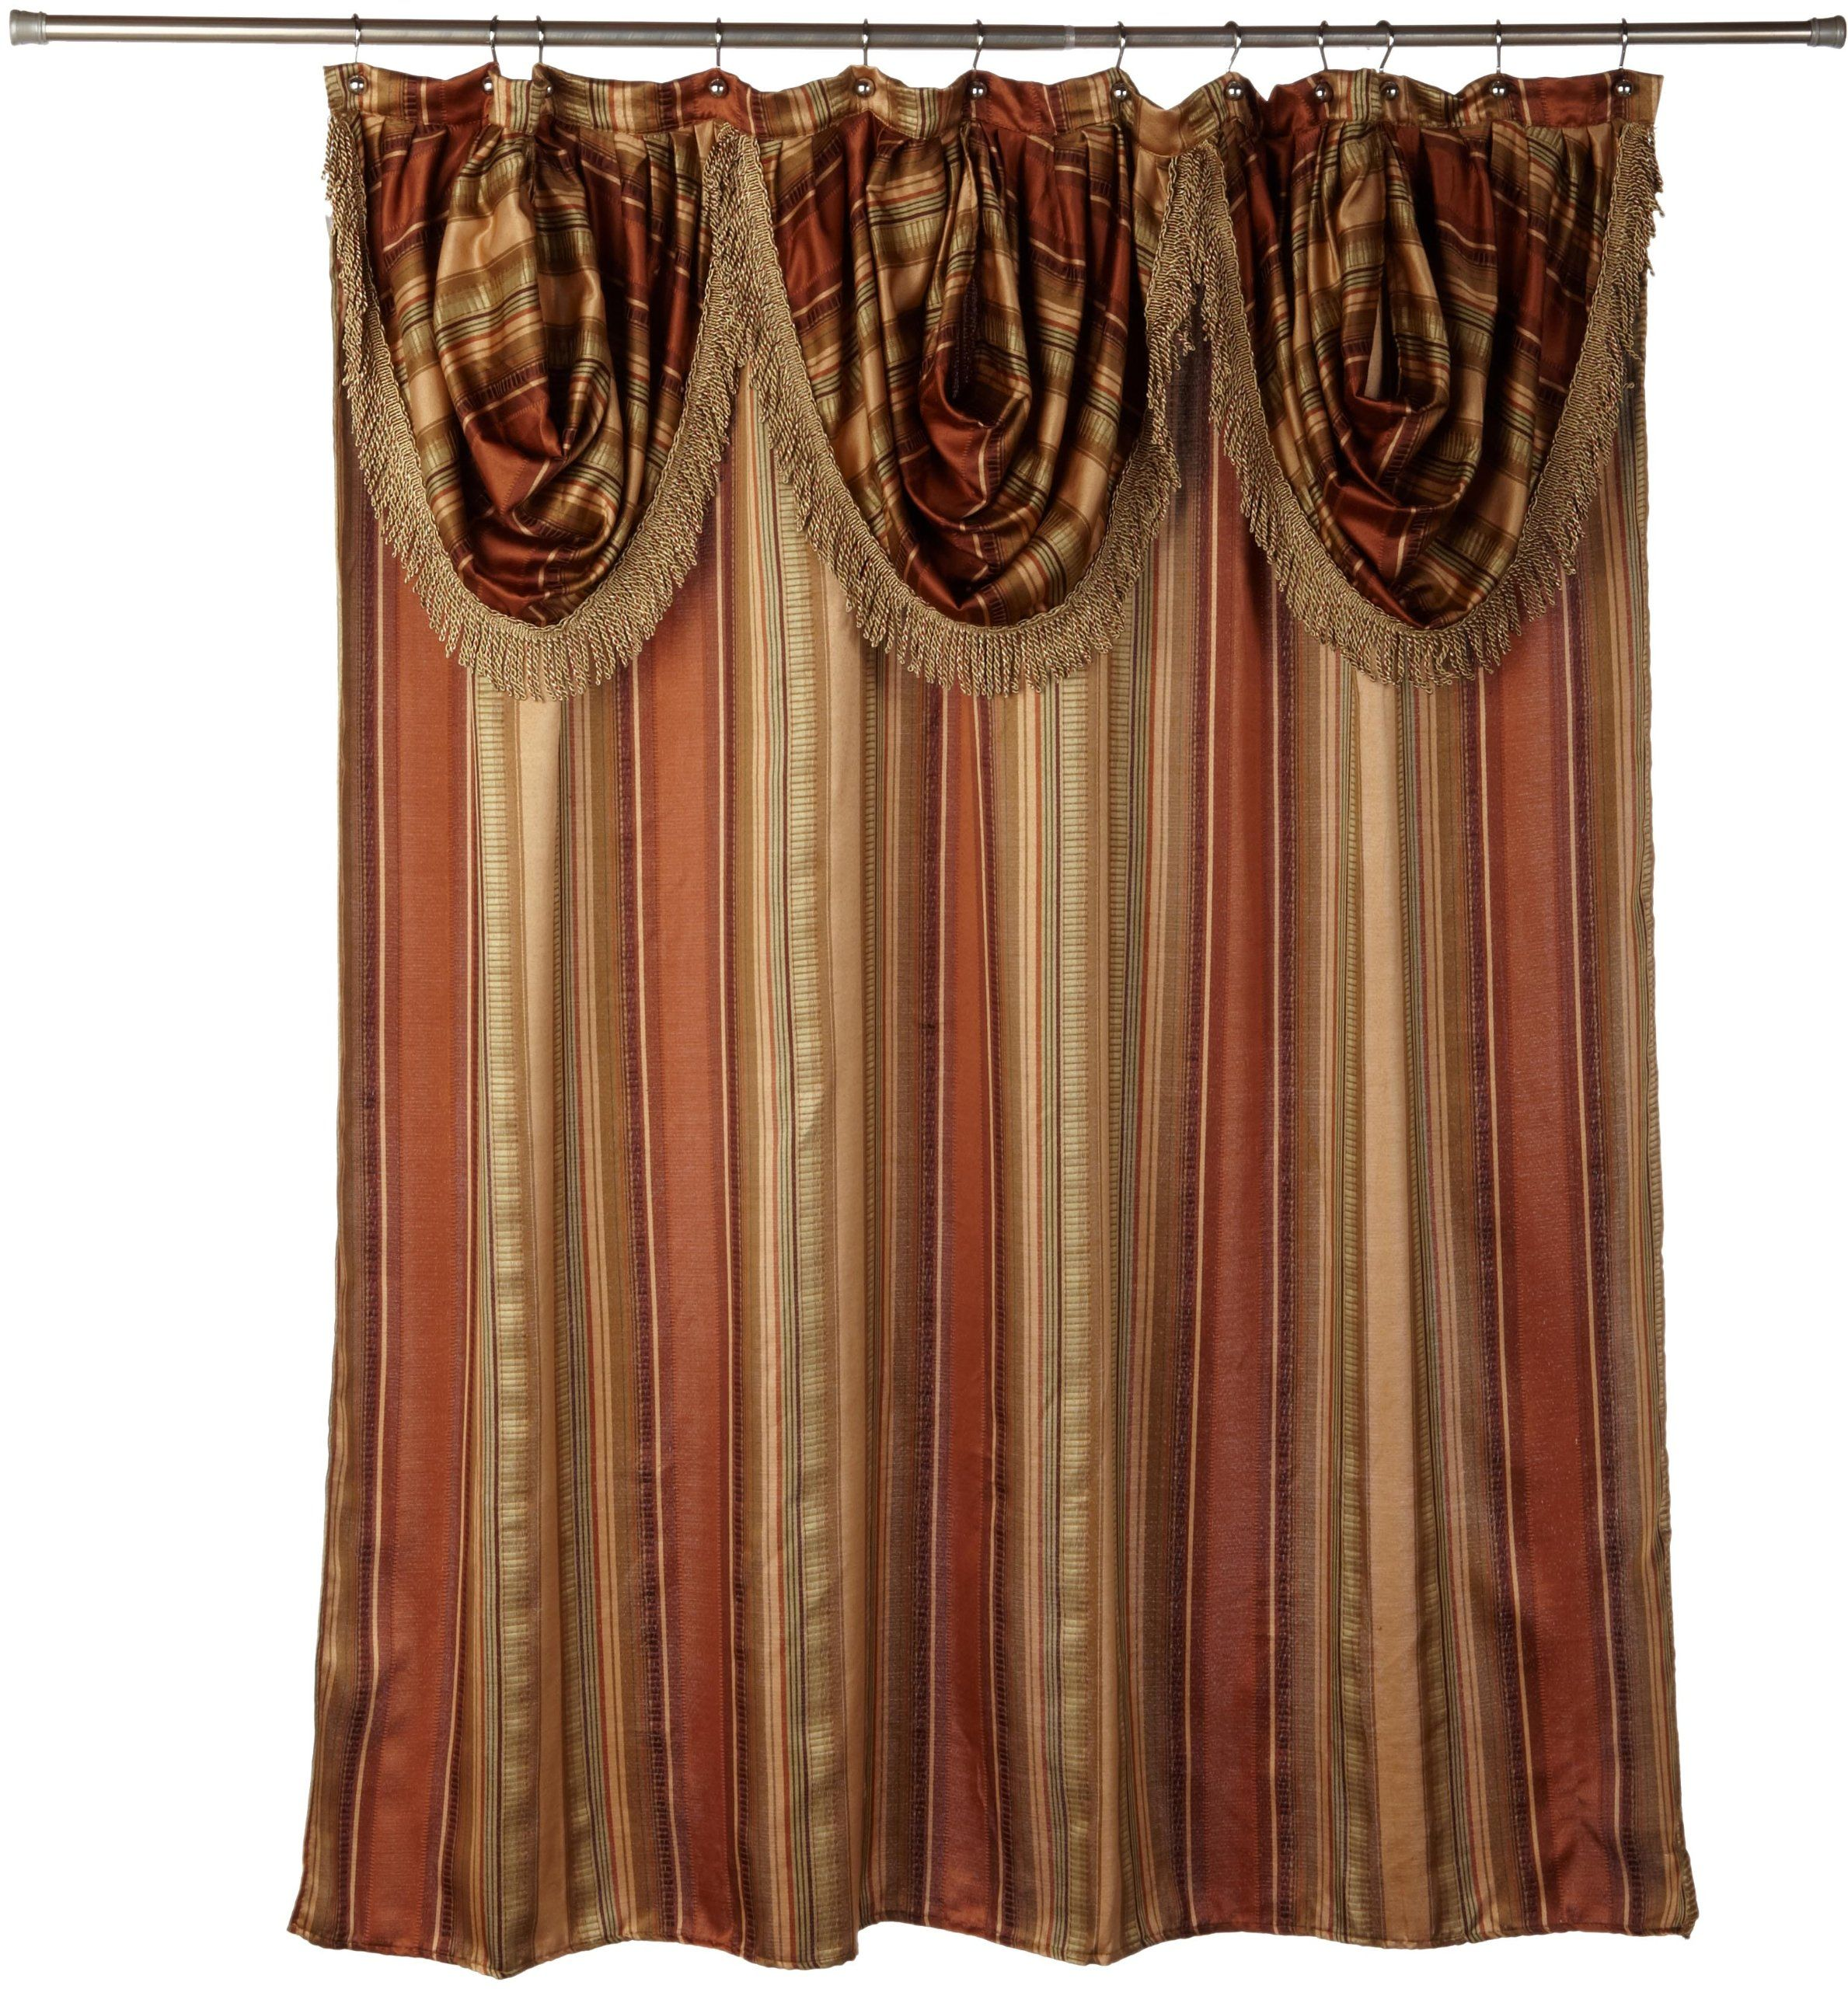 Popular Bath Contempo Spice With Attached Valance Fabric Shower